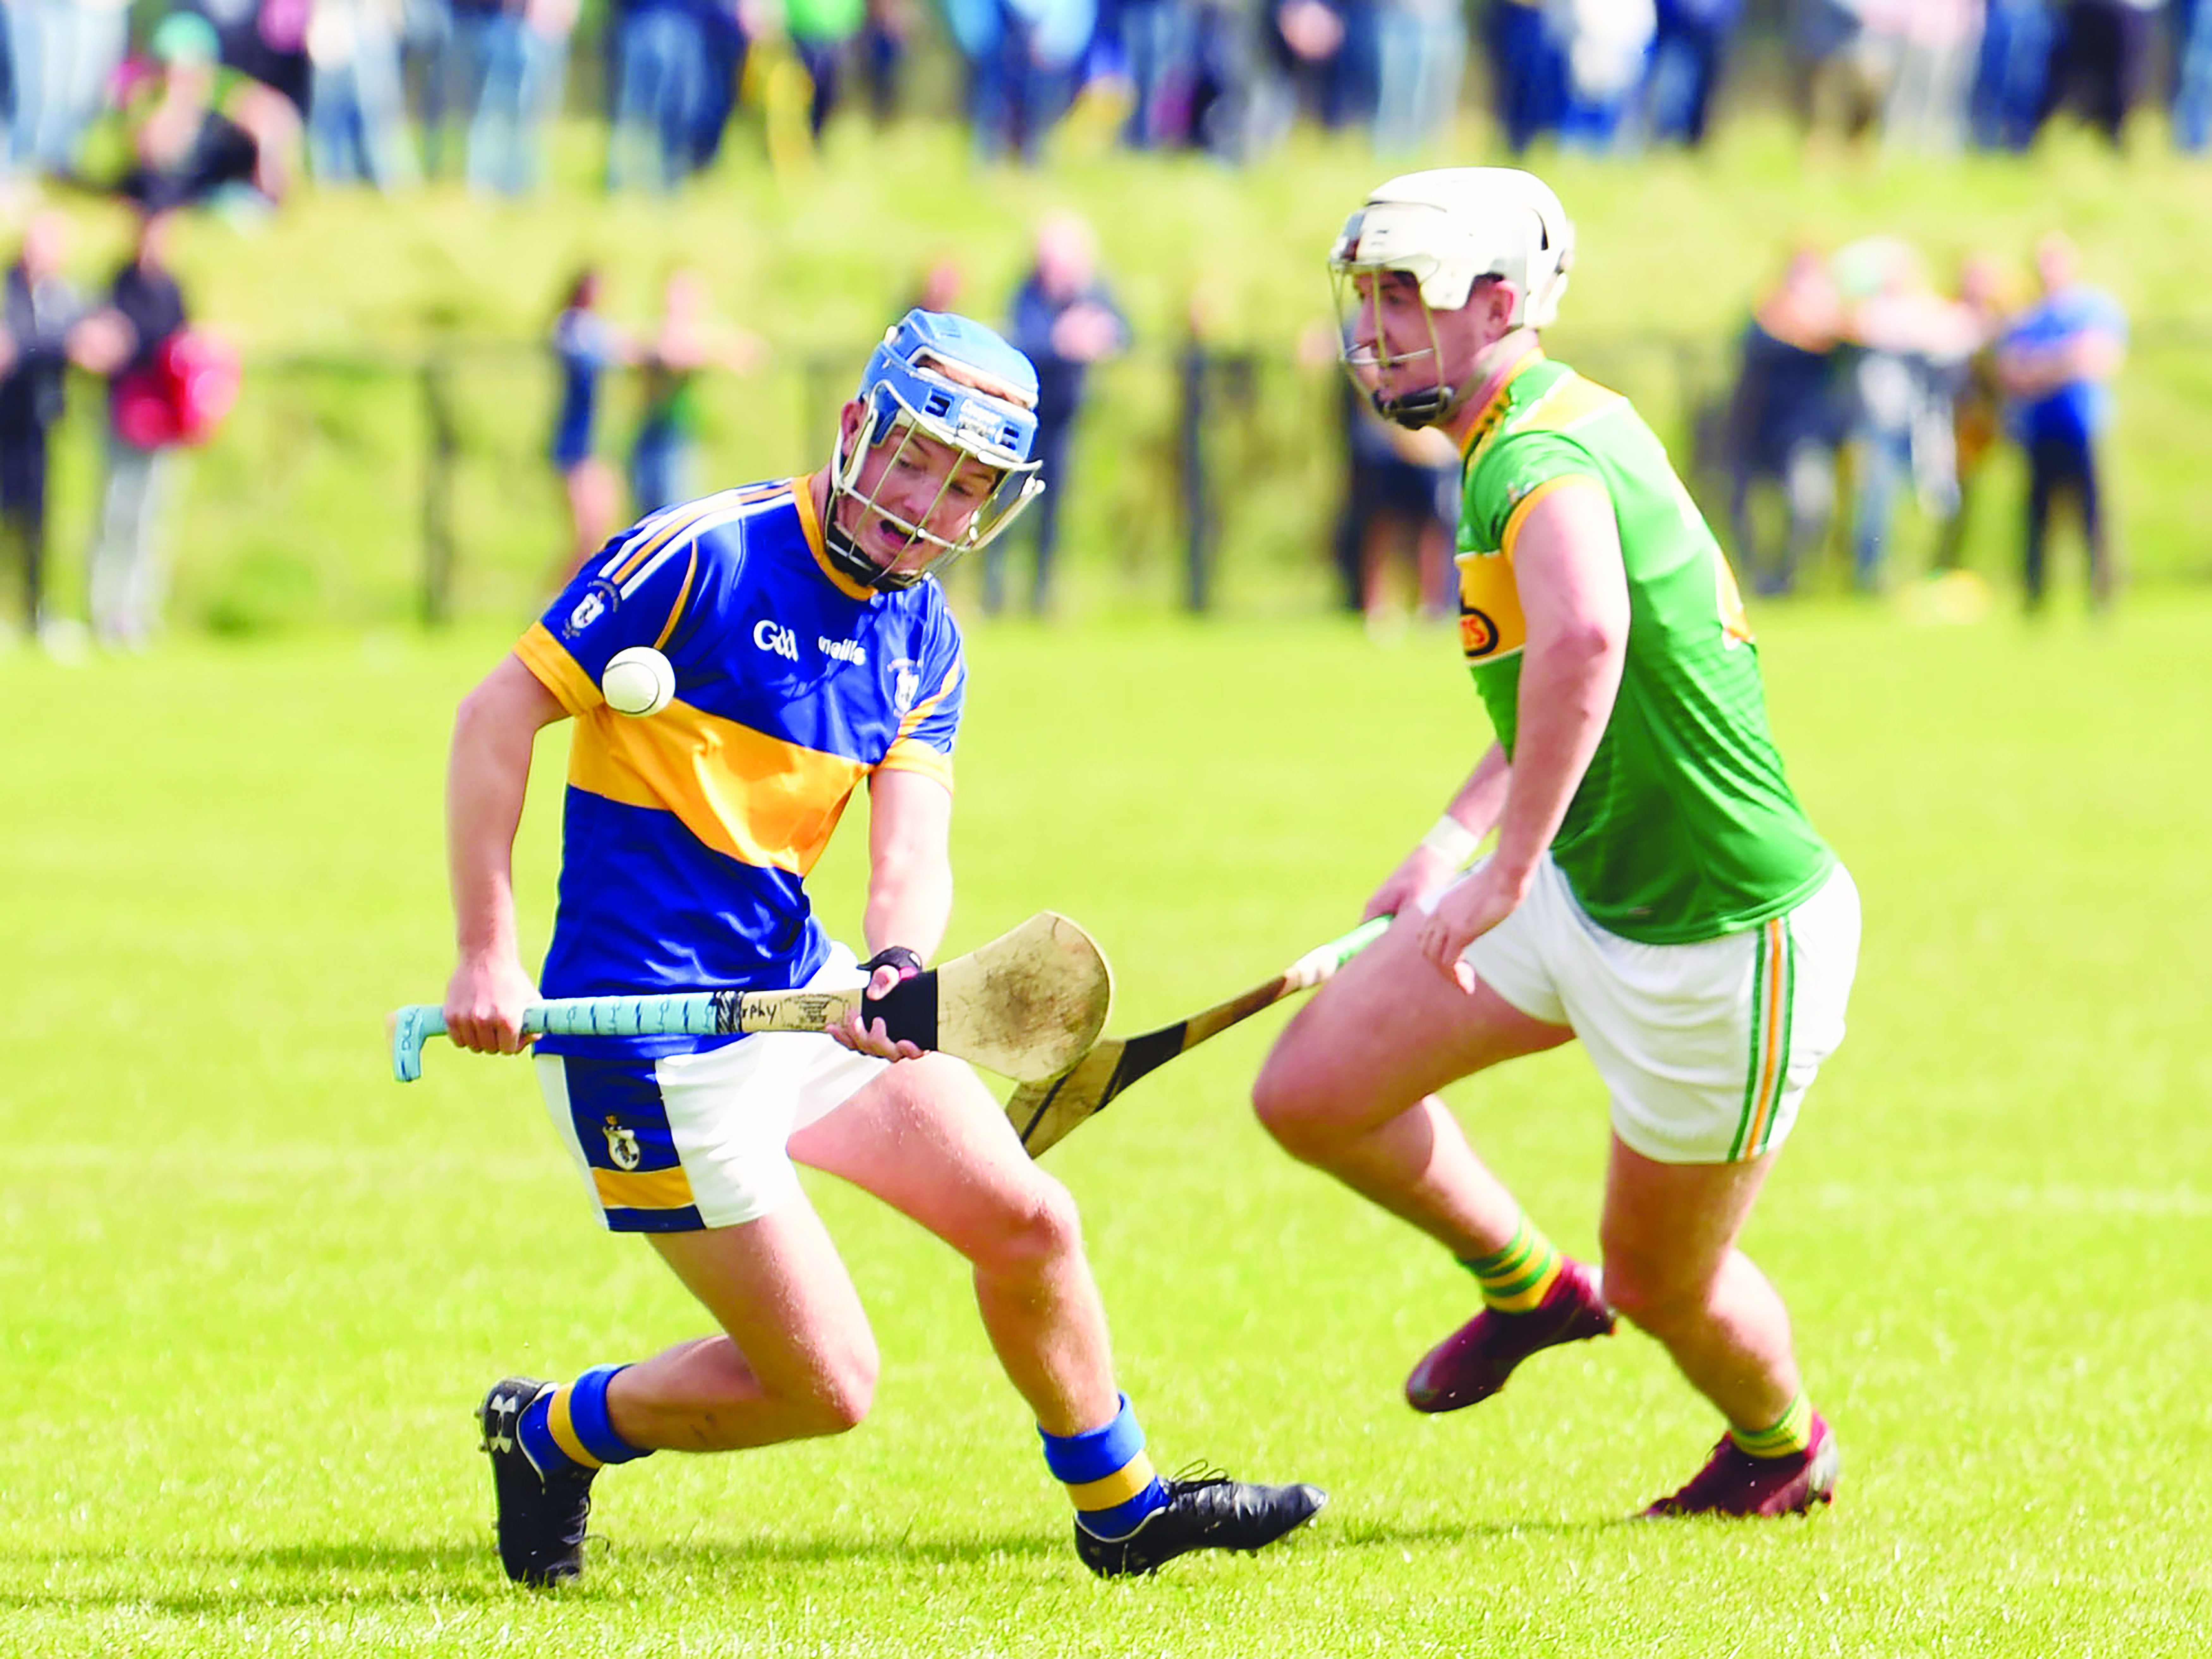 Tiernan Murphy and Conor McKinley came into close contact during last year's semi-final when Dunloy snatched a last-gasp win over Ross. The sides lock horns again this Sunday with the Volunteer Cup up for grabs